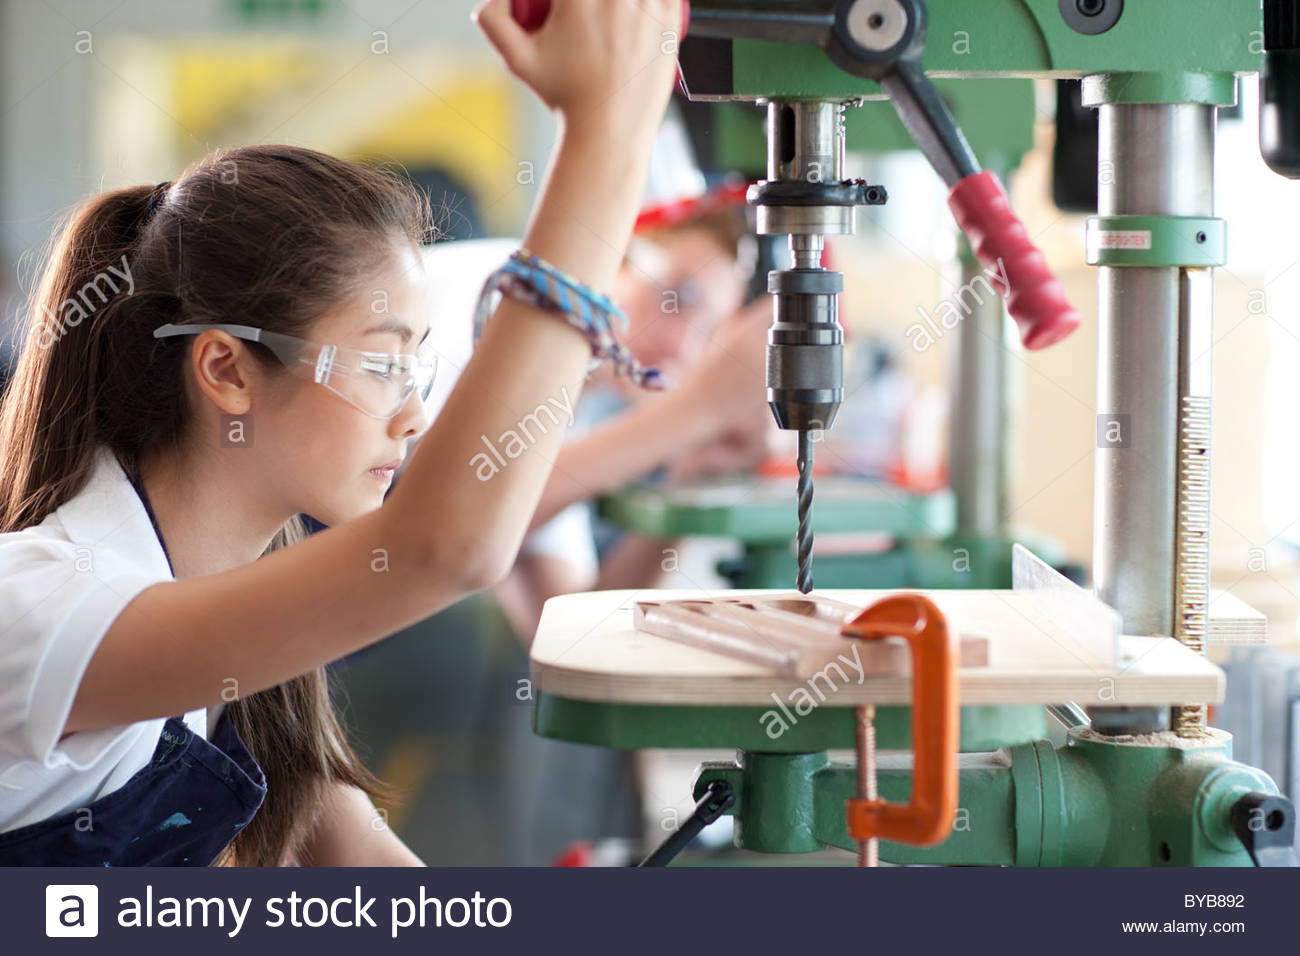 Serious student using drill in vocational school - Stock Image